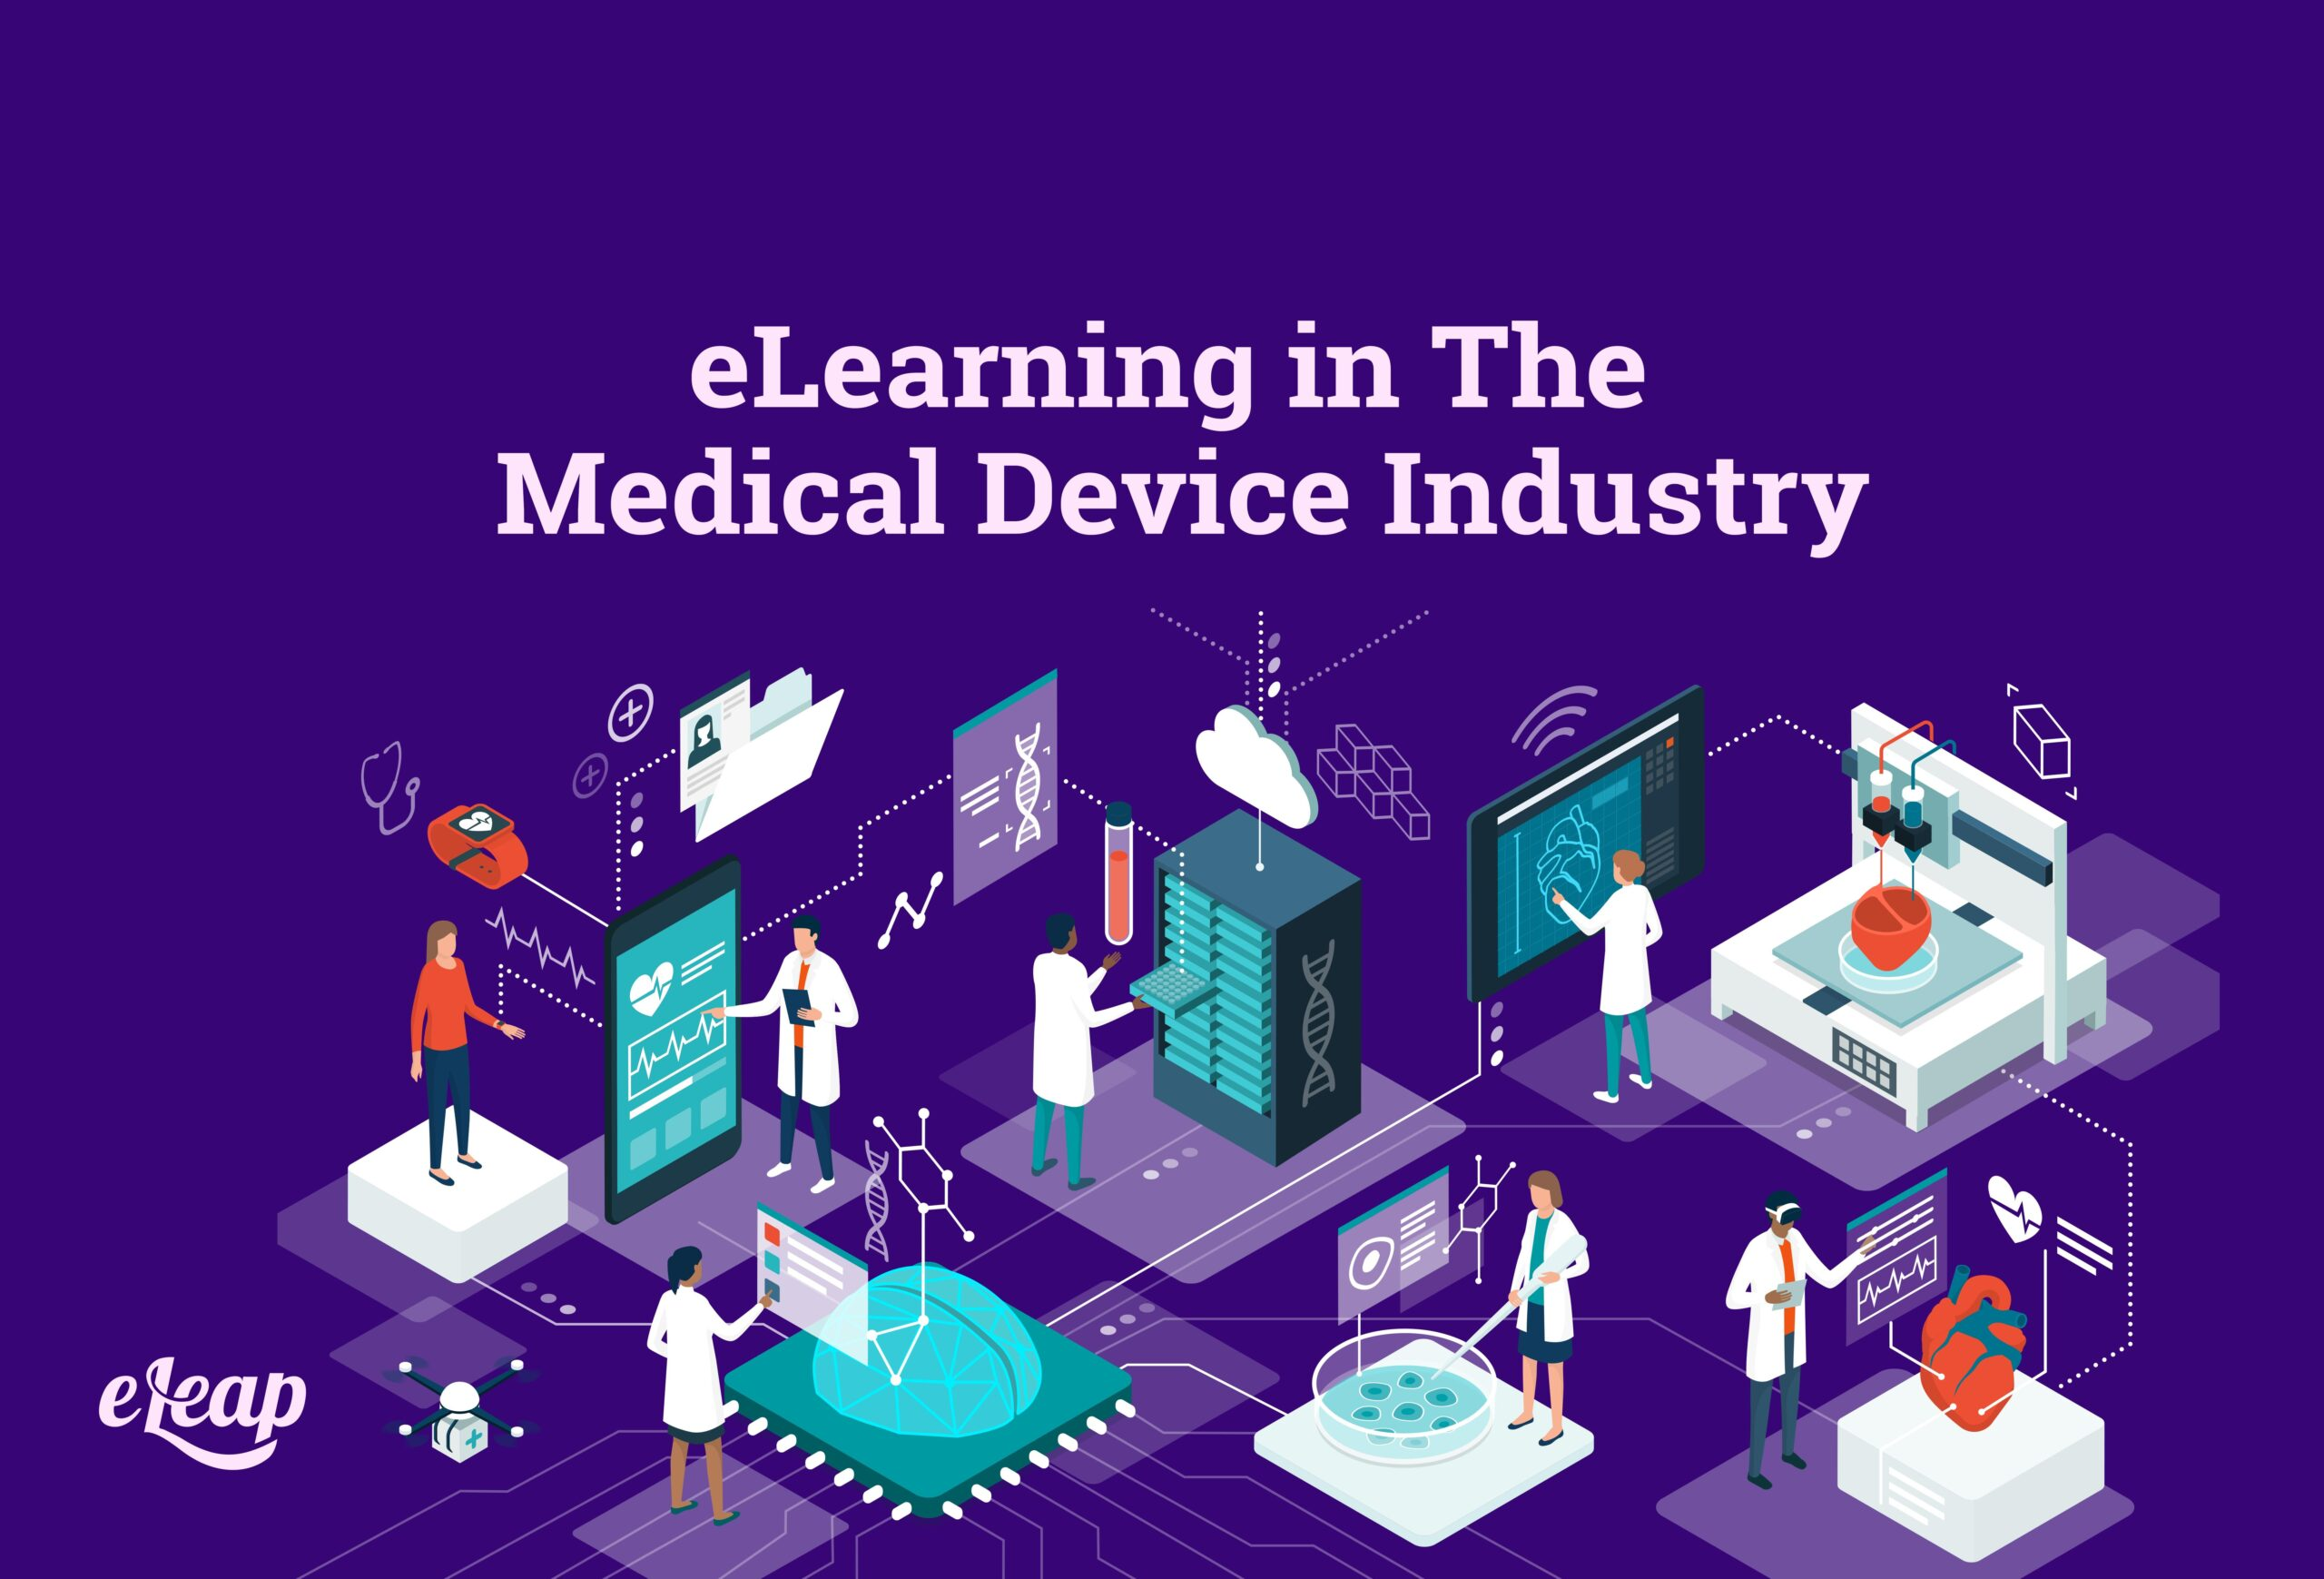 eLearning in The Medical Device Industry